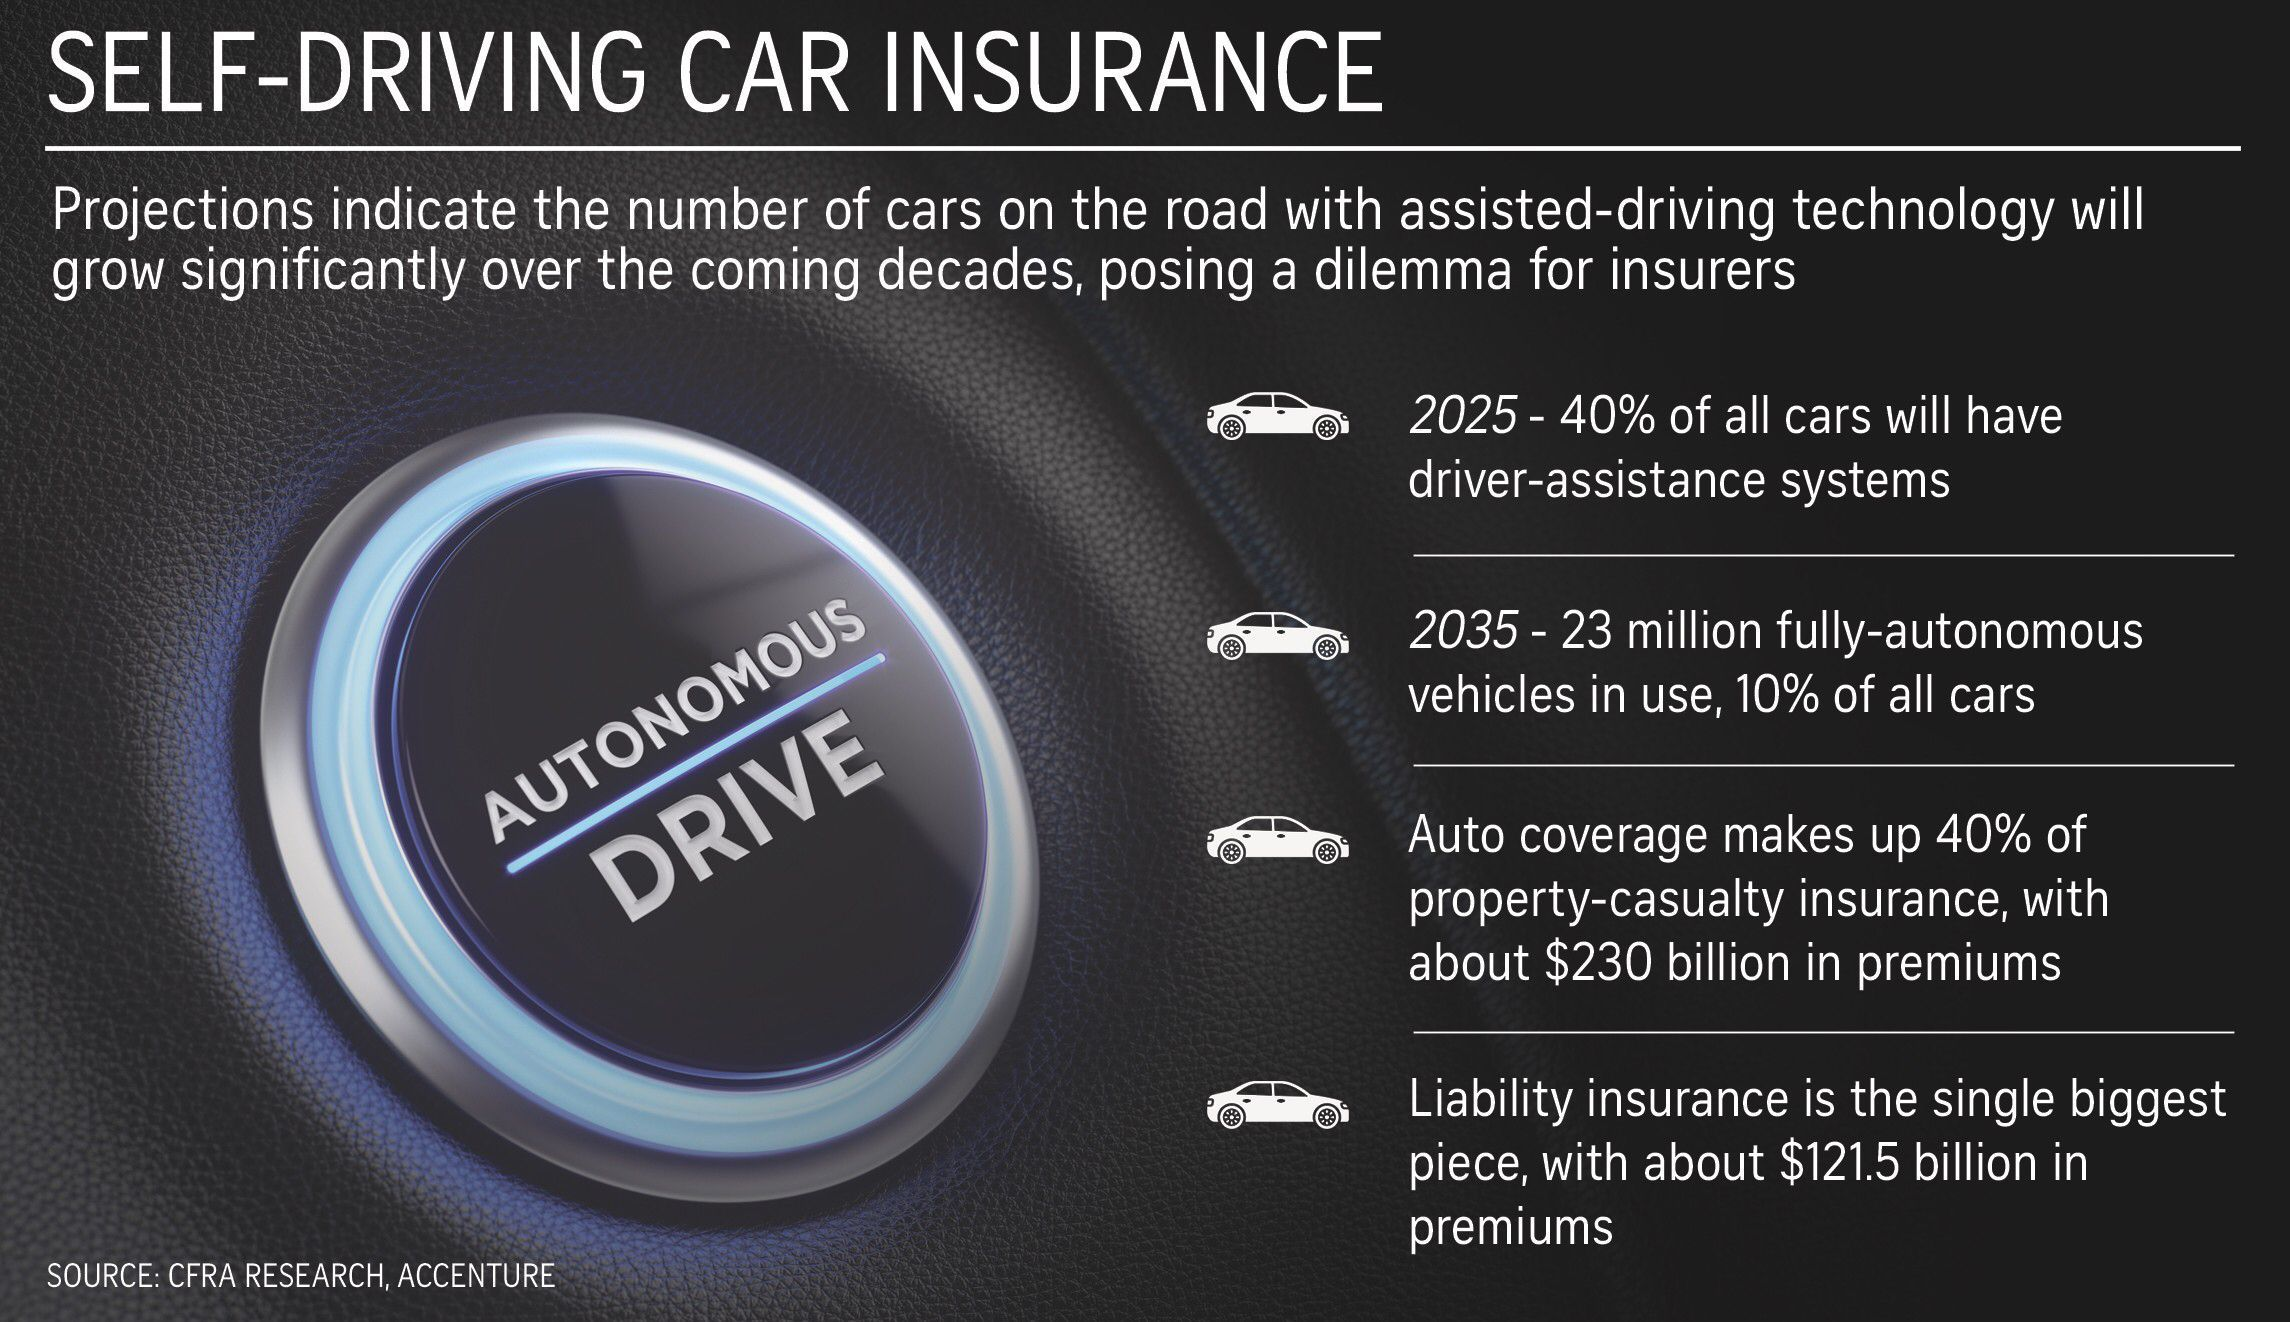 Pin By Mike Quindazzi On Technology Self Driving Car Insurance